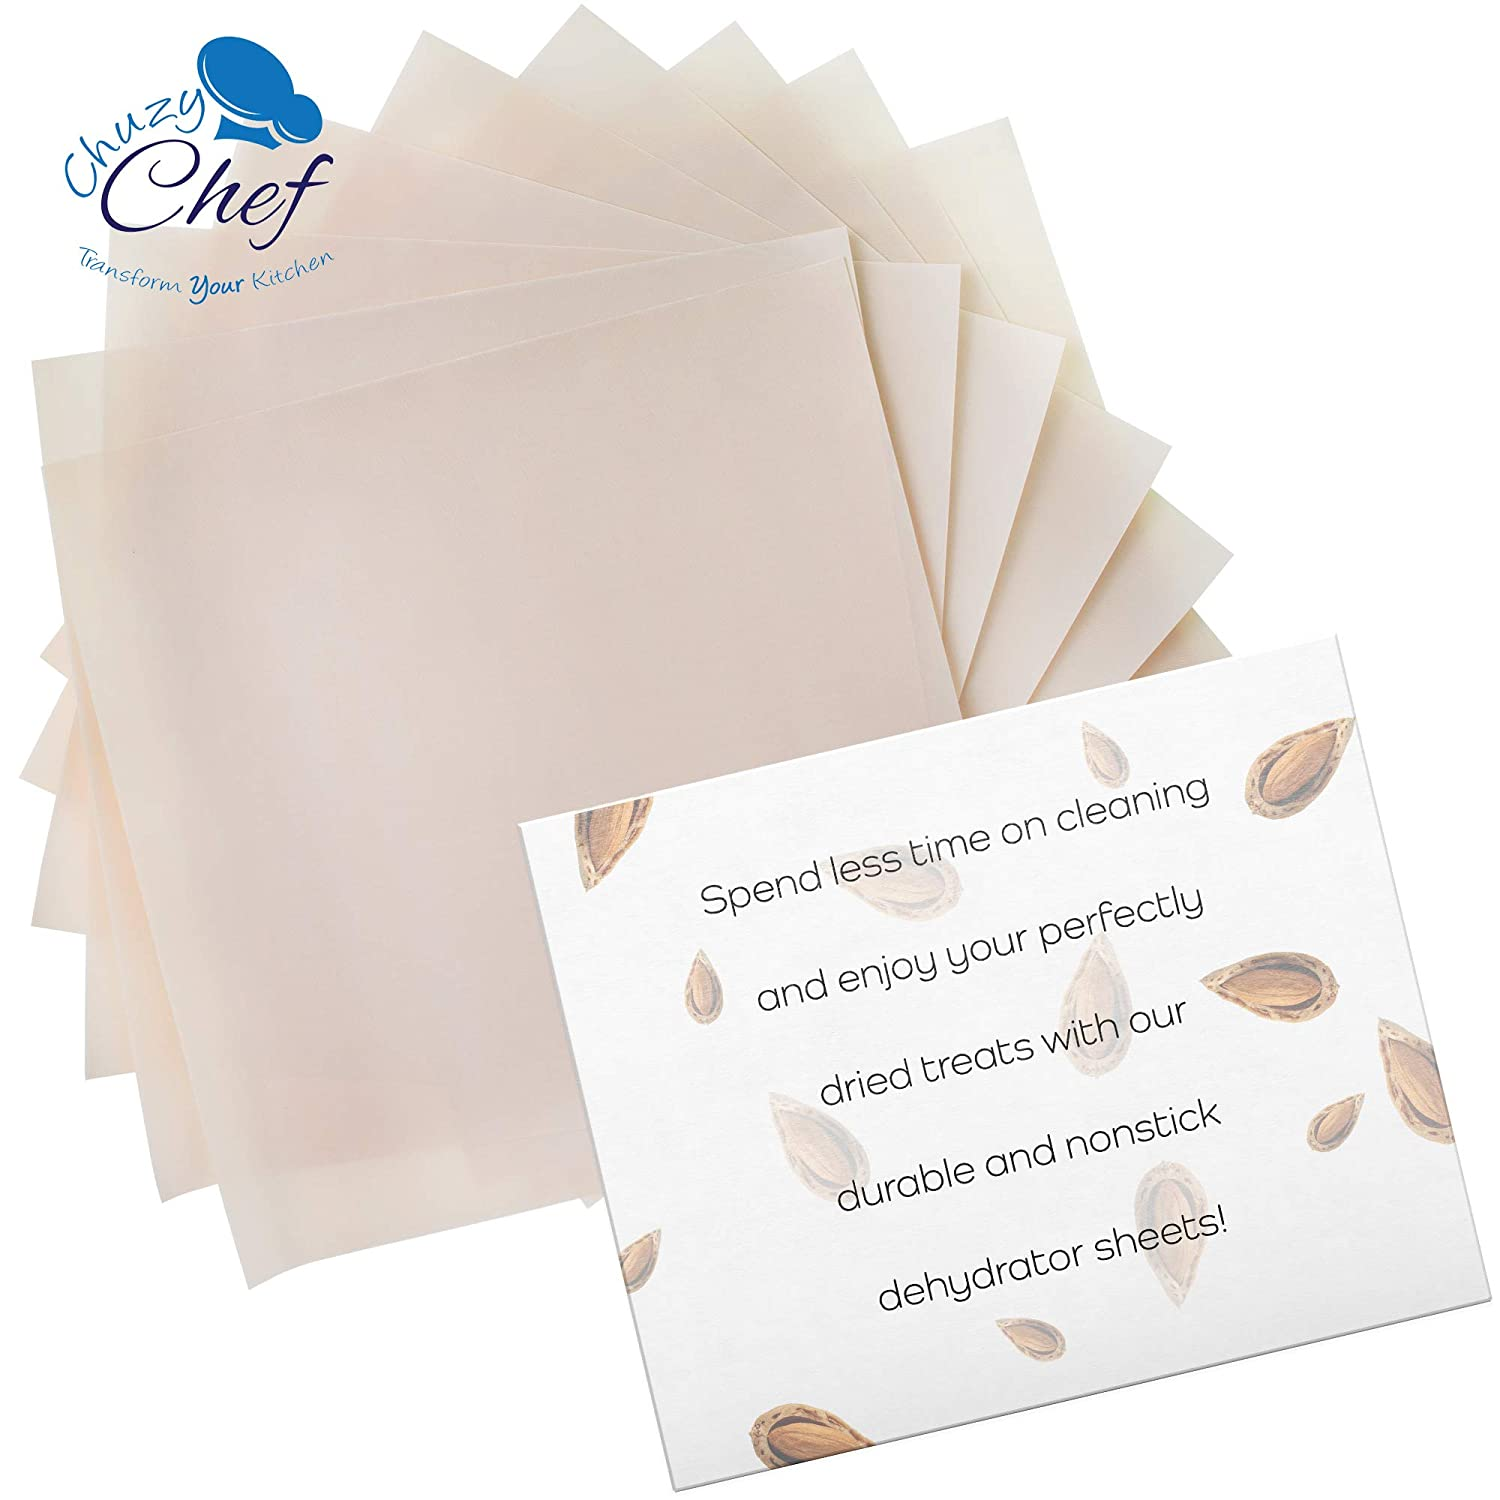 Dehydrator Sheets pack of 9 Limited Edition 2.0